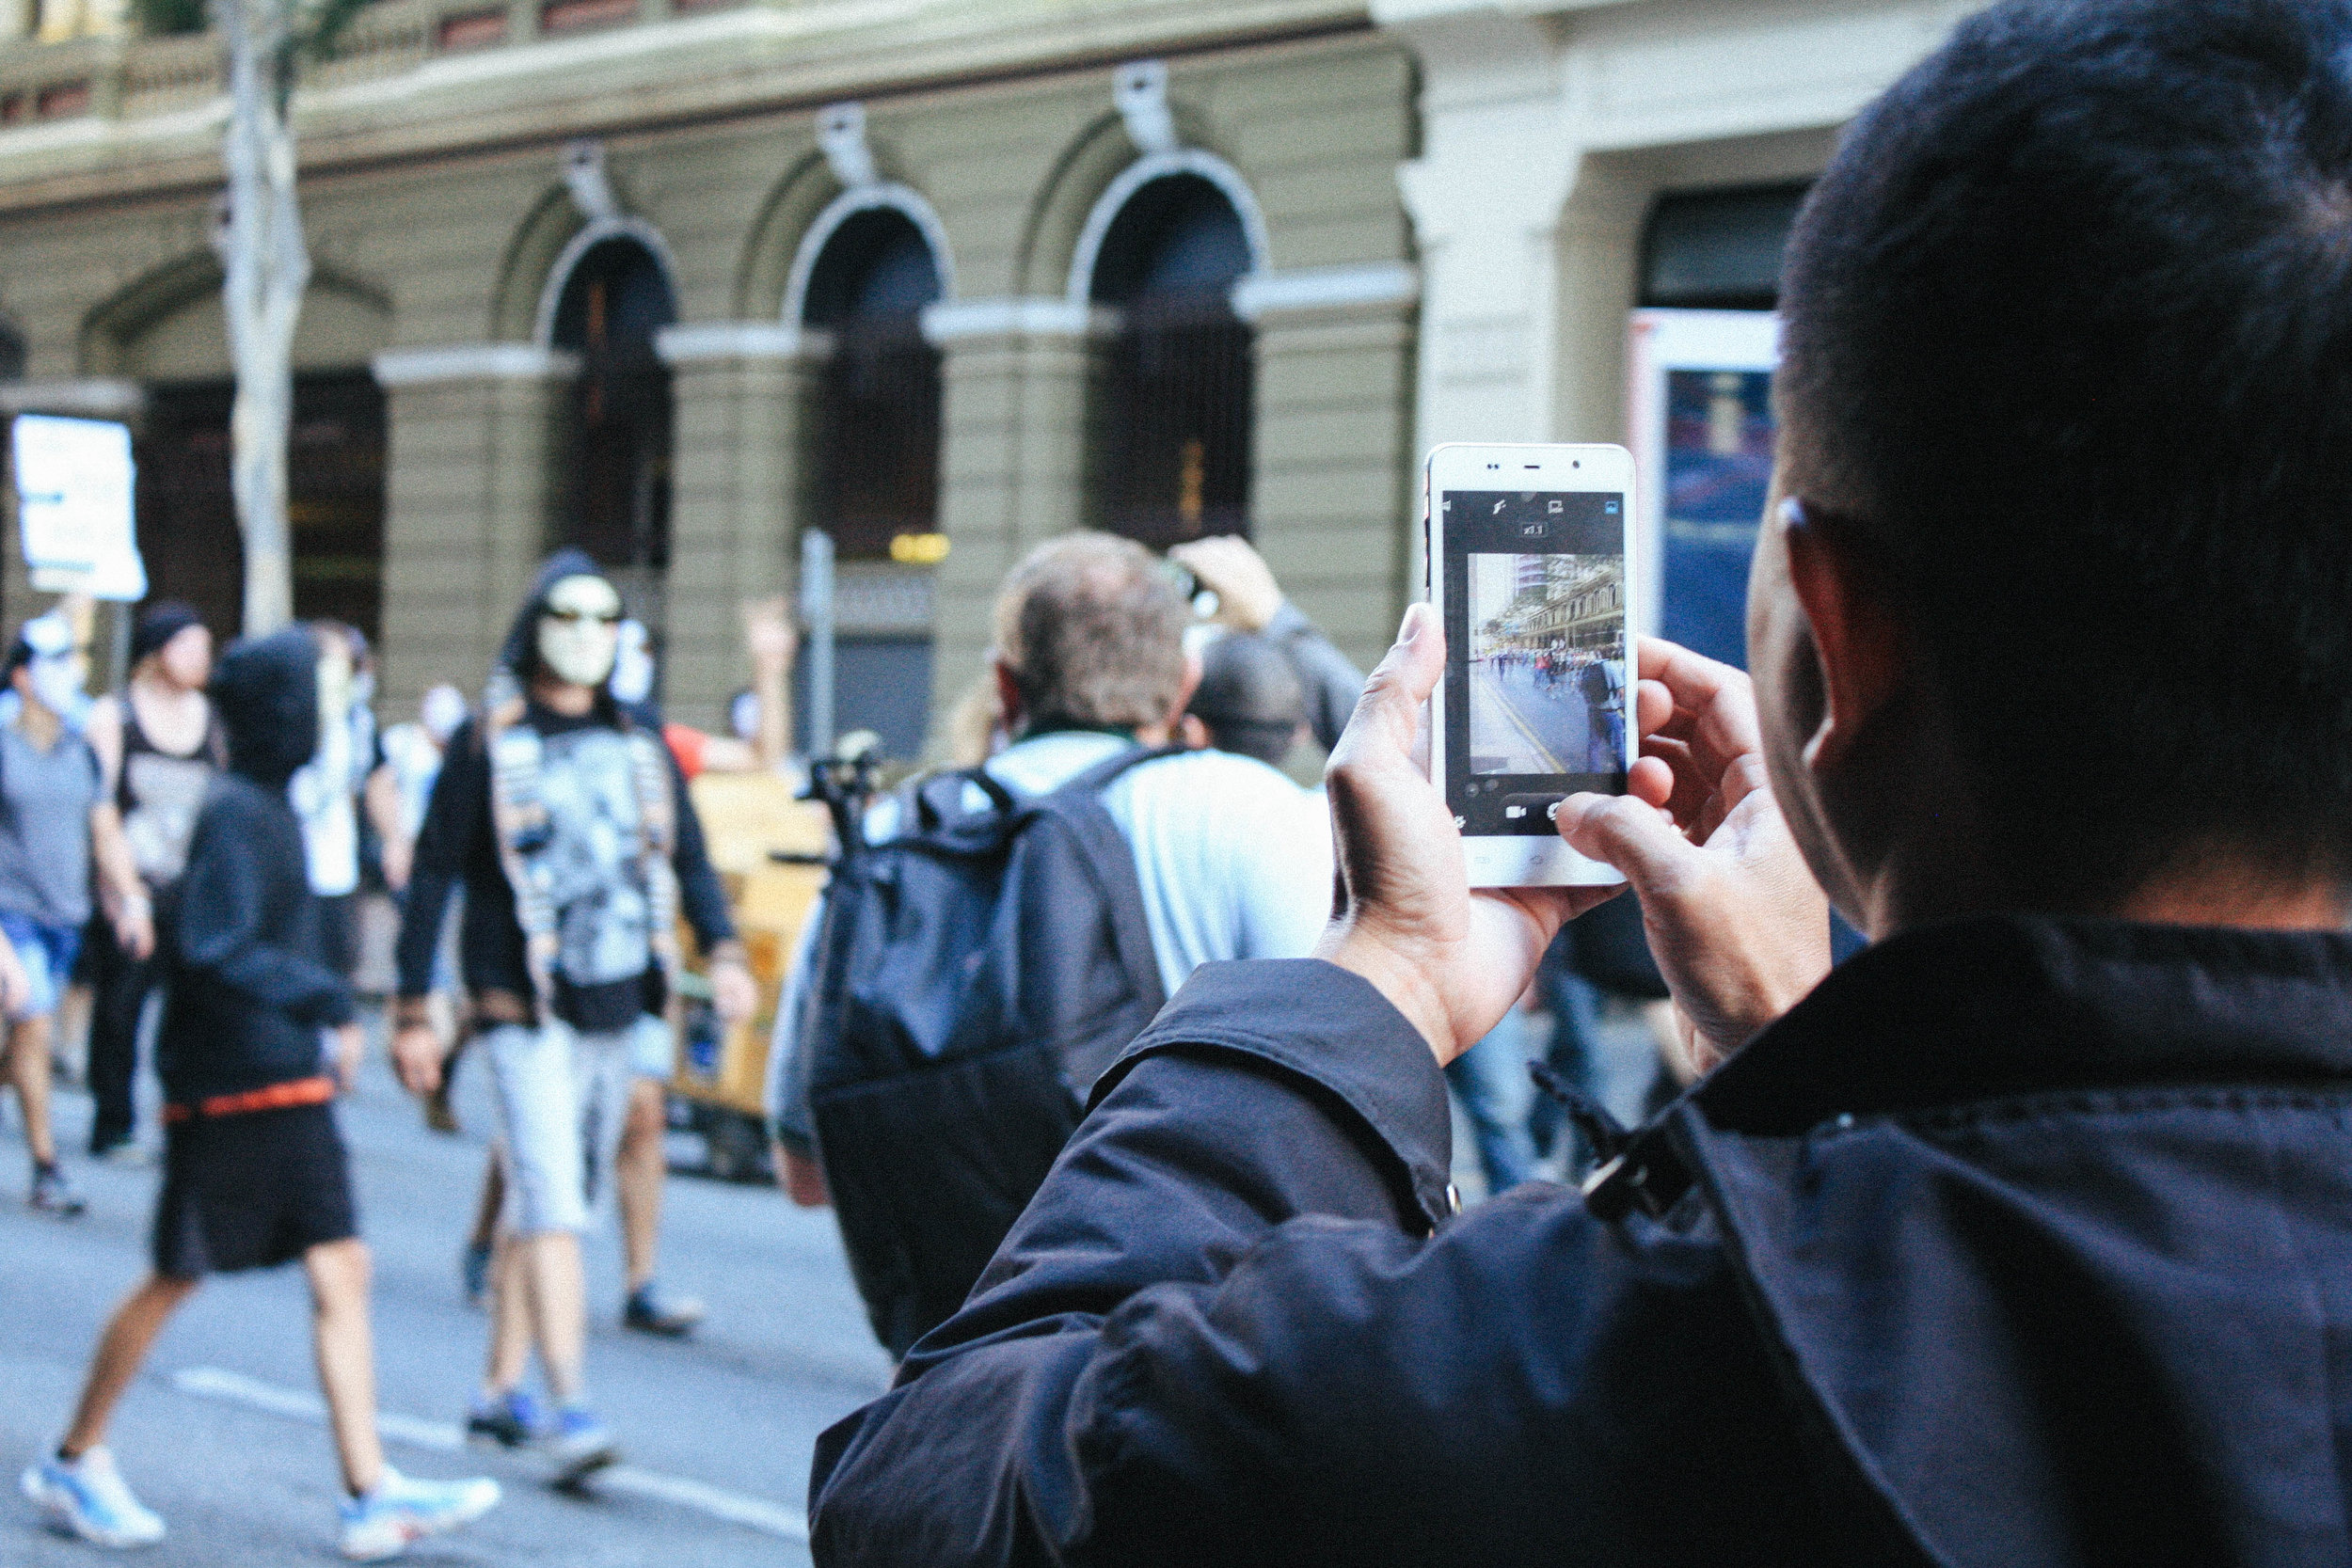 Lesly Lotha_Newzulu_Million_Mask_March_Brisbane_Australia_08